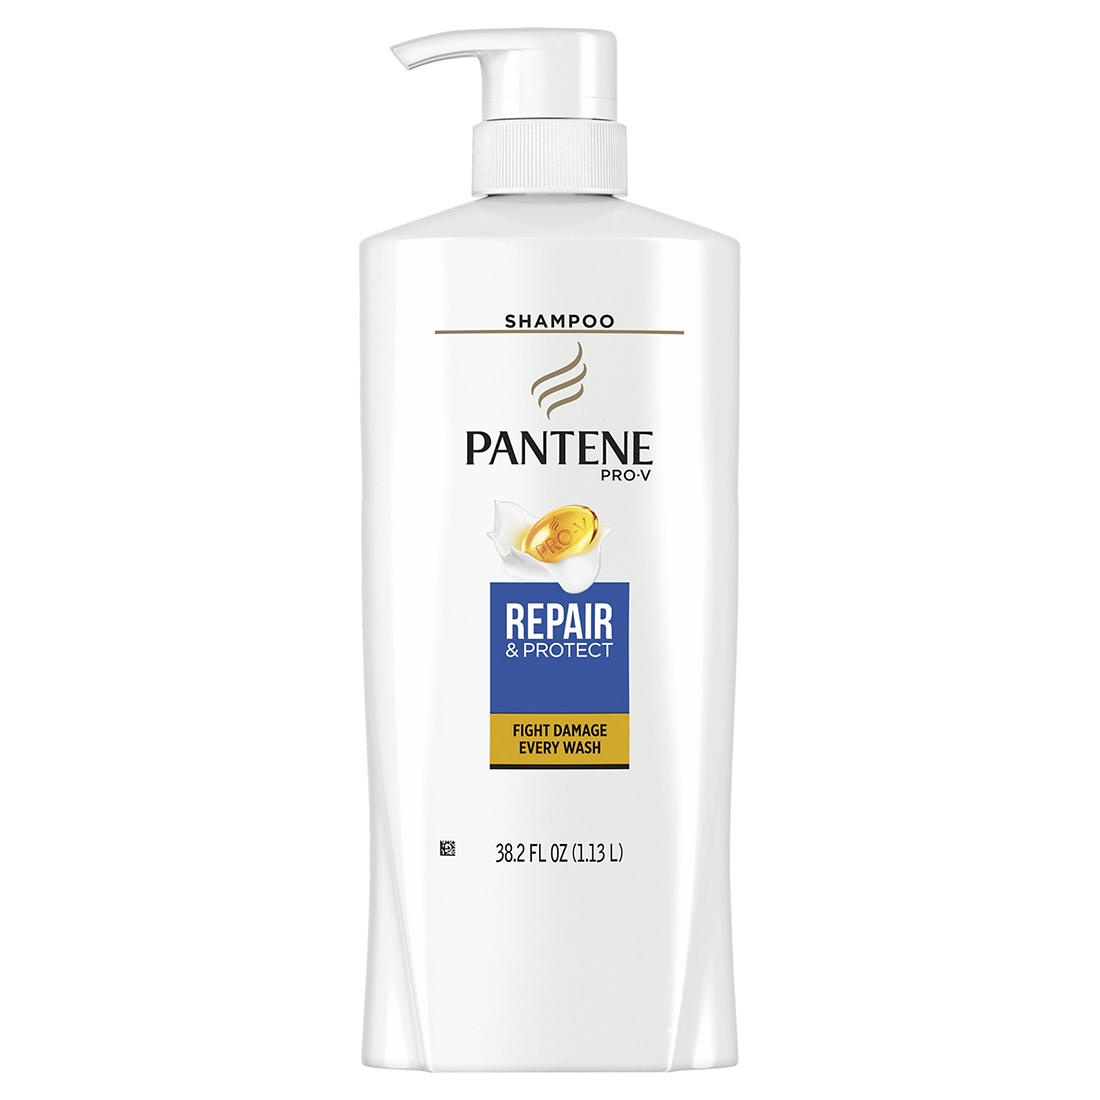 image about Pantene Coupons Printable identified as Pantene Expert-V Fix and Include Shampoo, 38.2 fl. oz.